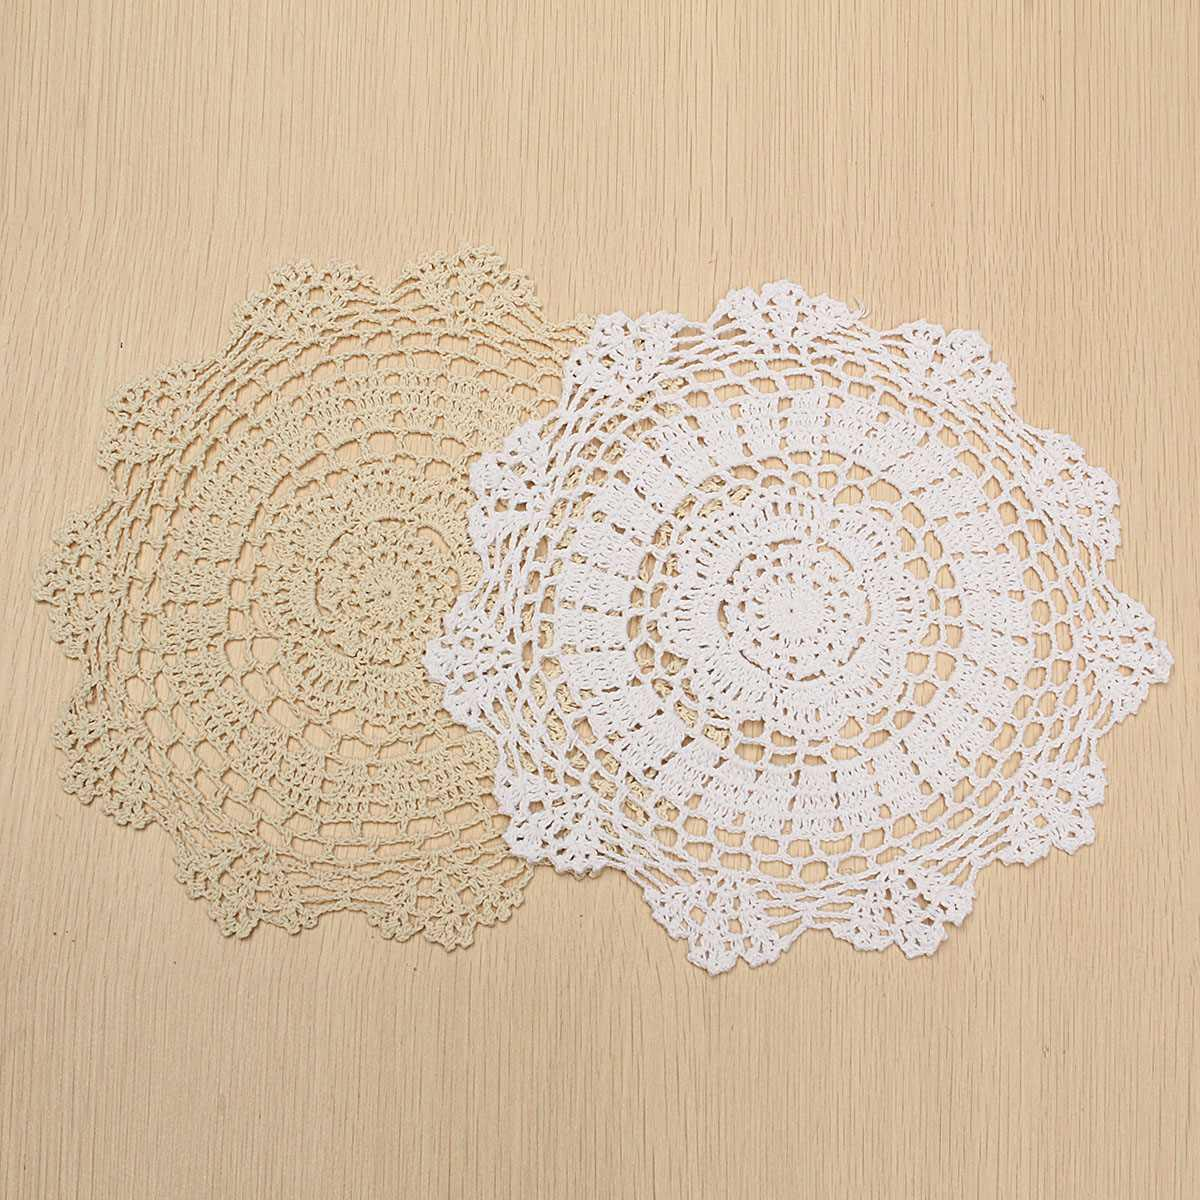 3 Pretty Designs of Craft Paper Doilies 2019 Wholesale Round Retro Crochet Lace Doilies Floral Placemat